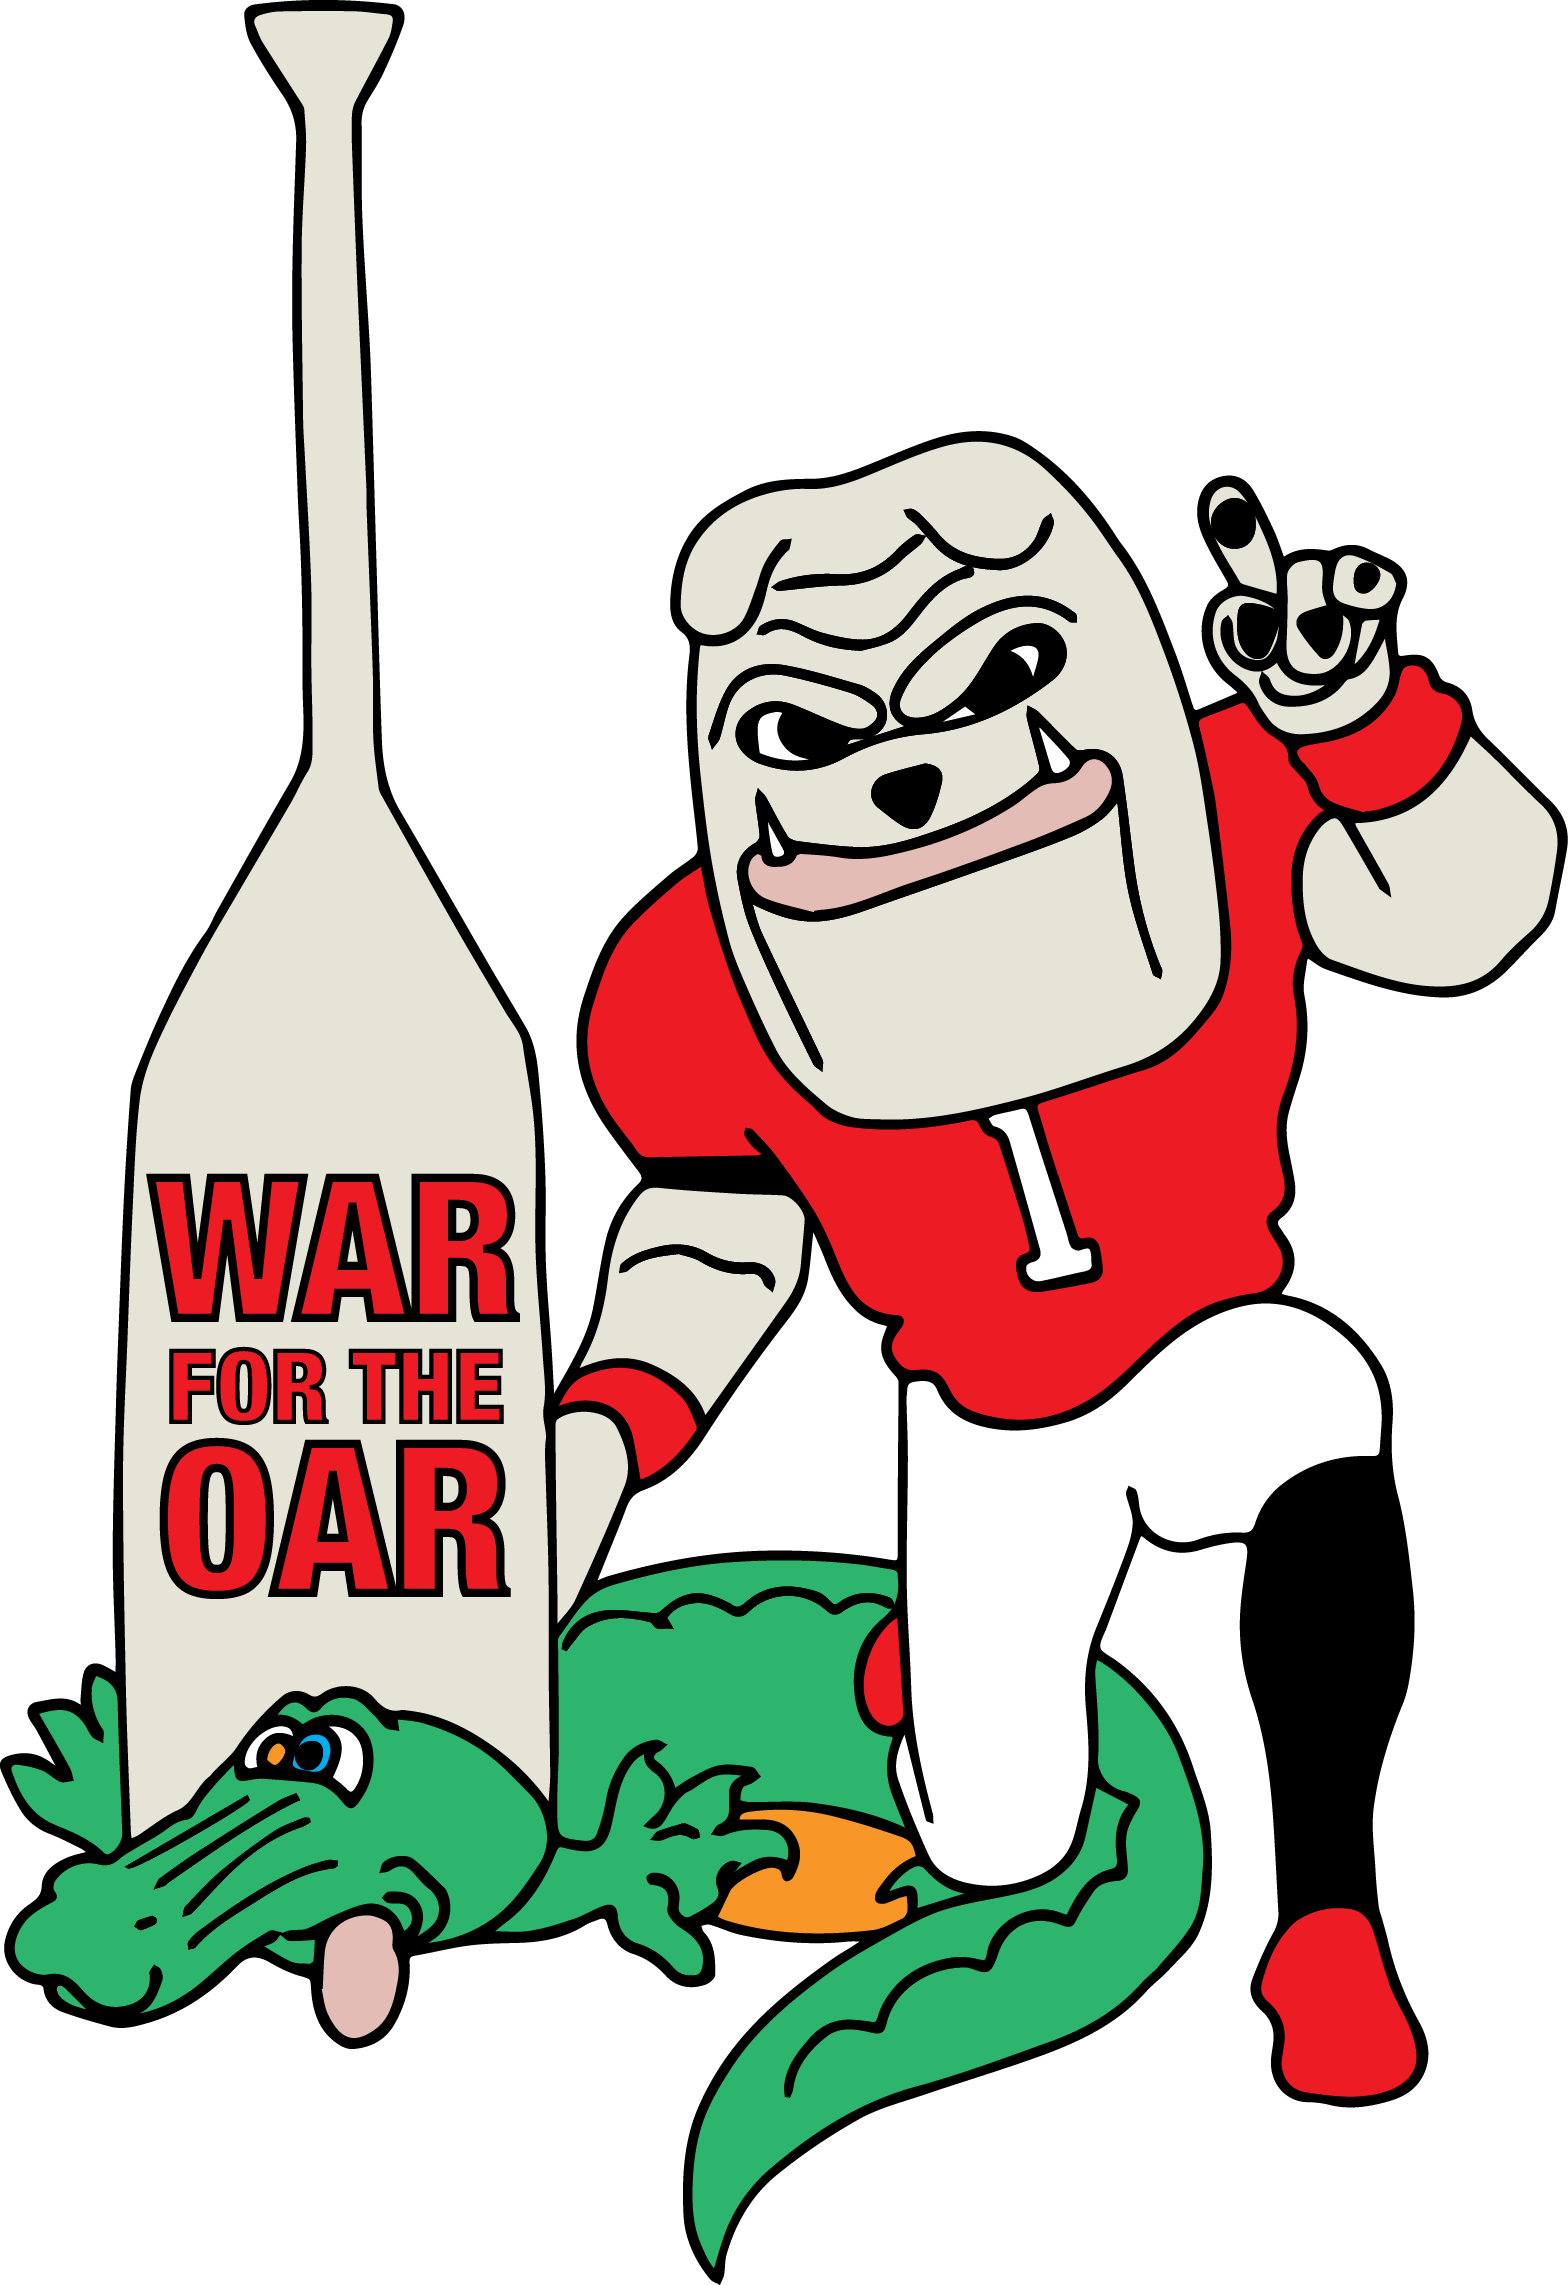 War for the Oar Graphic